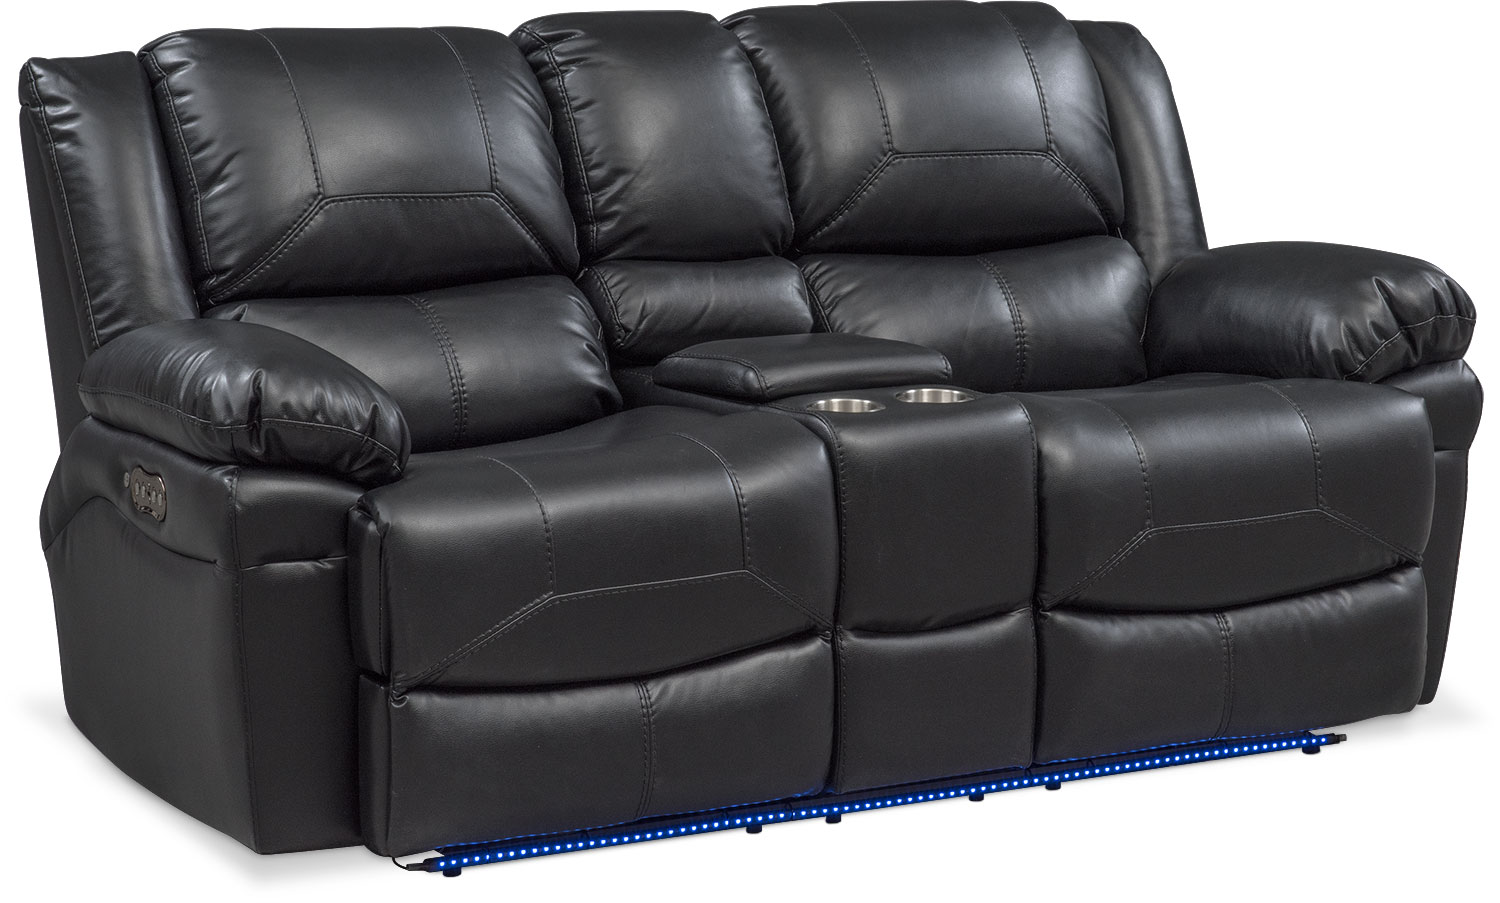 power loveseat living room furniture - monza dual power reclining loveseat with console - DVECUTL